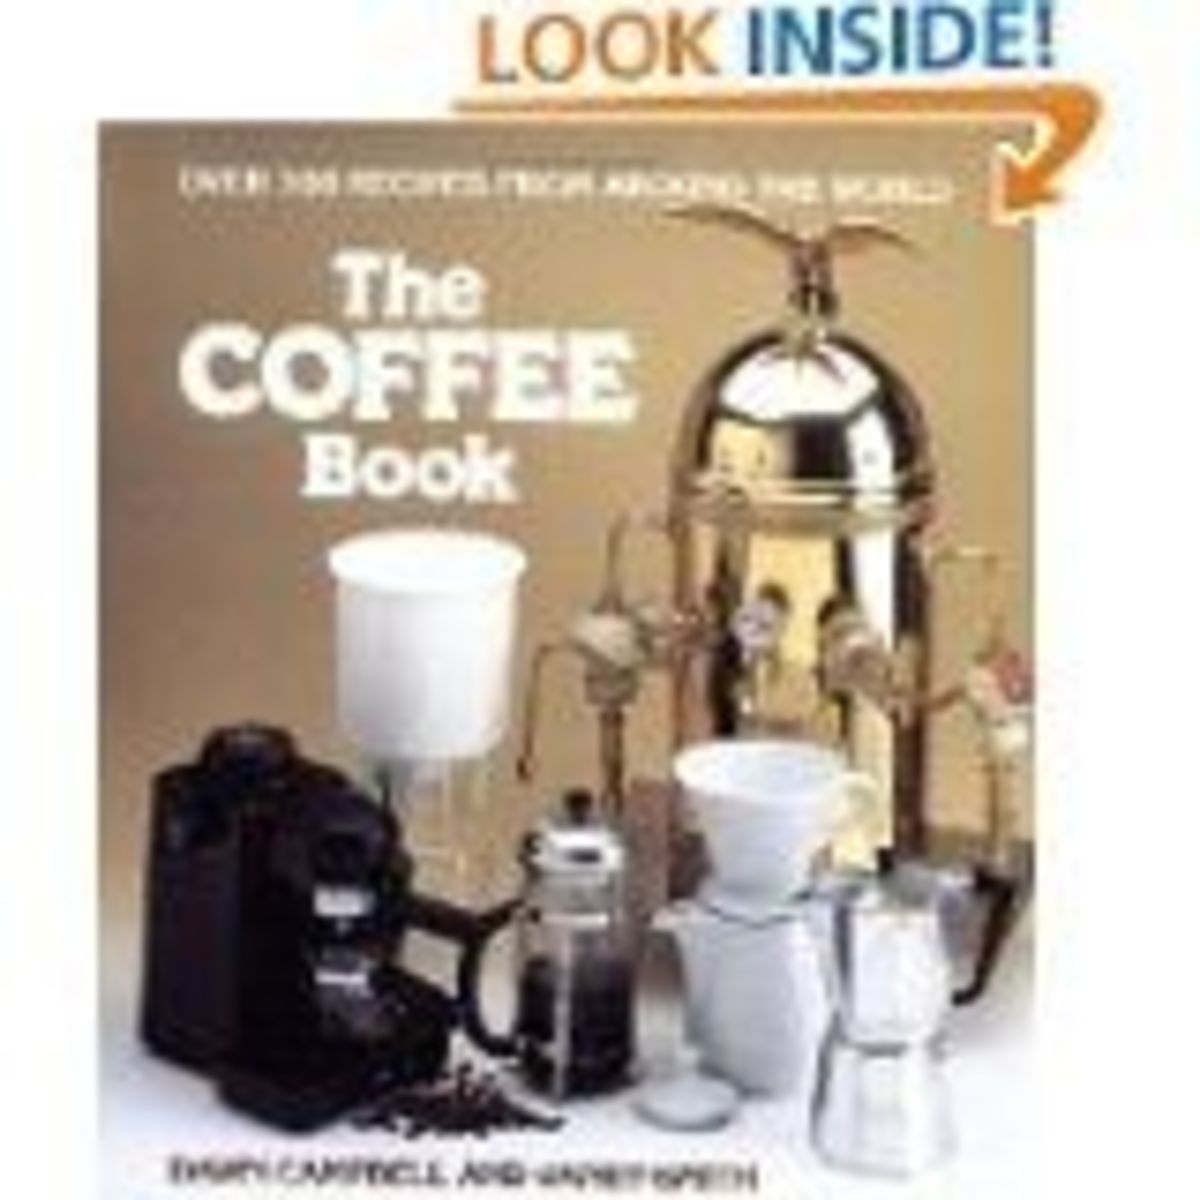 Learn About Making Coffee With The Coffee Book.  Photo Credit Amazon You Can Find The Book On This Page.